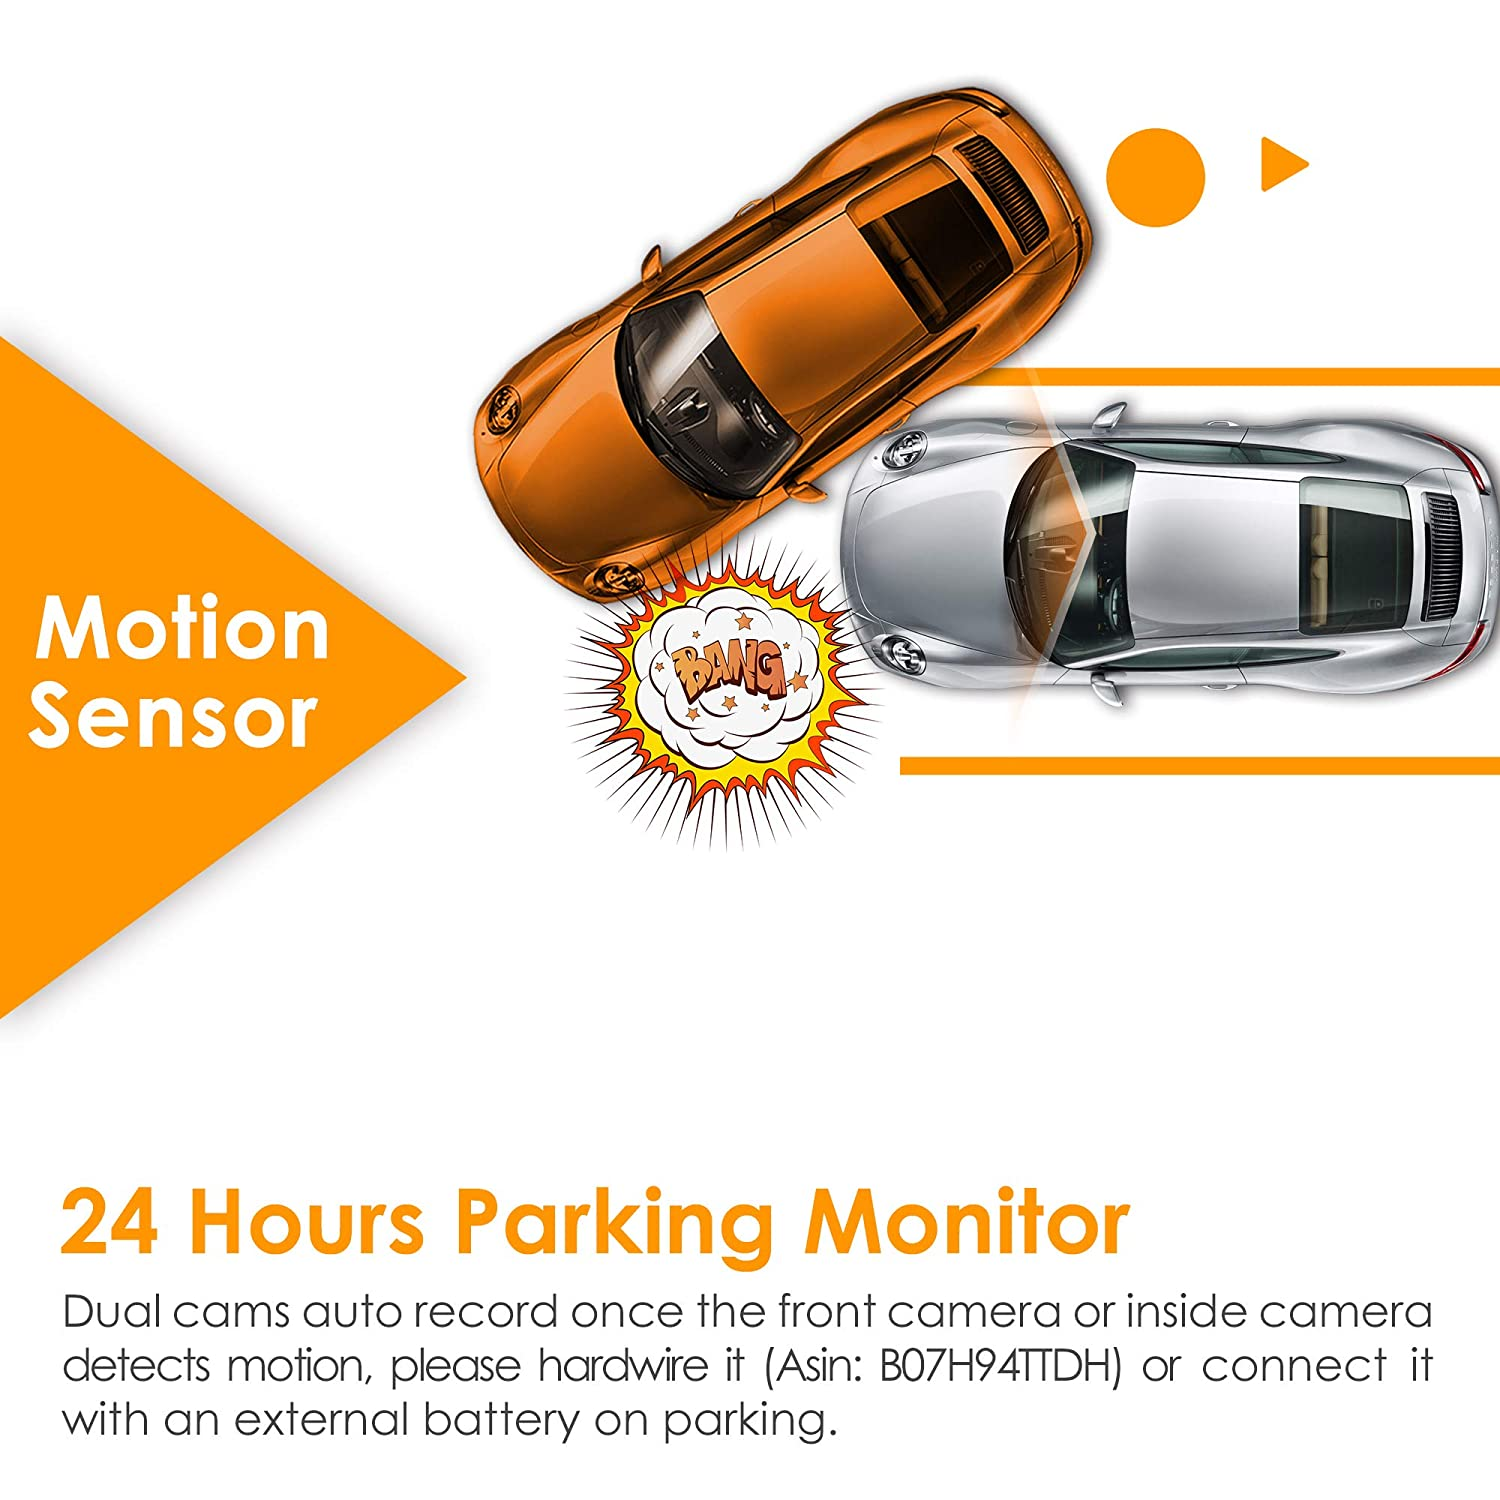 Wave Guard Parking Monitor Super Night Vision Vantrue T2 24//7 Surveillance Super Capacitor Dash Cam for Cars HDR G-Sensor /& Loop Re Full HD 1920X1080p OBD Hardwire Car Camera 2.0 LCD 160/° Wide Angle Dash Camera Car Video Recorder with Sony Sensor